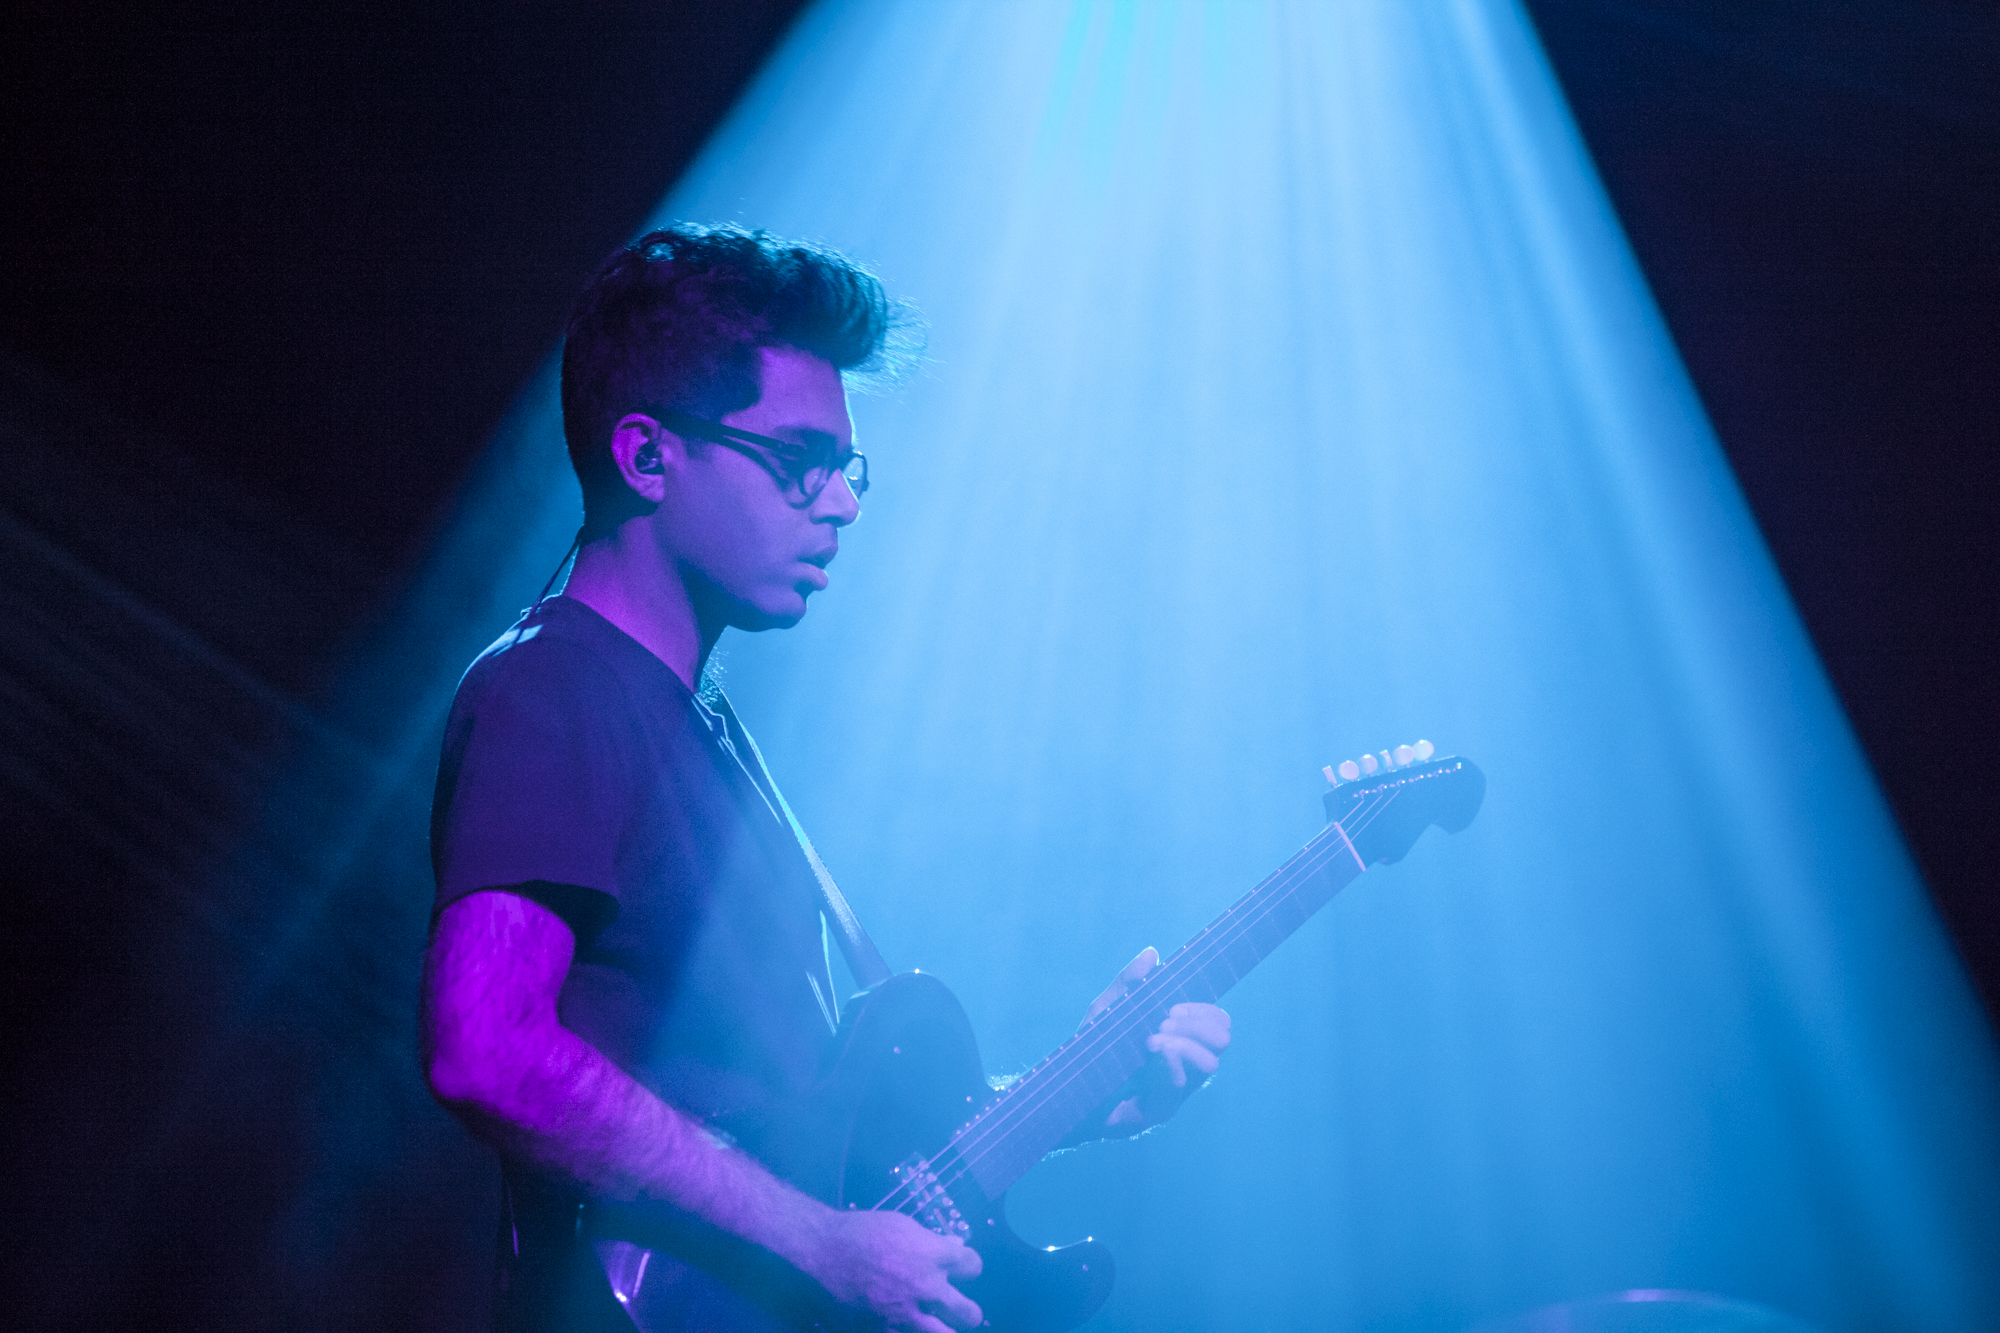 Rafiq Bhatia of Son Lux plays at Brooklyn Steel in Williamsburg, Brooklyn, New York on March 22, 2018. (© Michael Katzif - Do not use or republish without prior consent.)